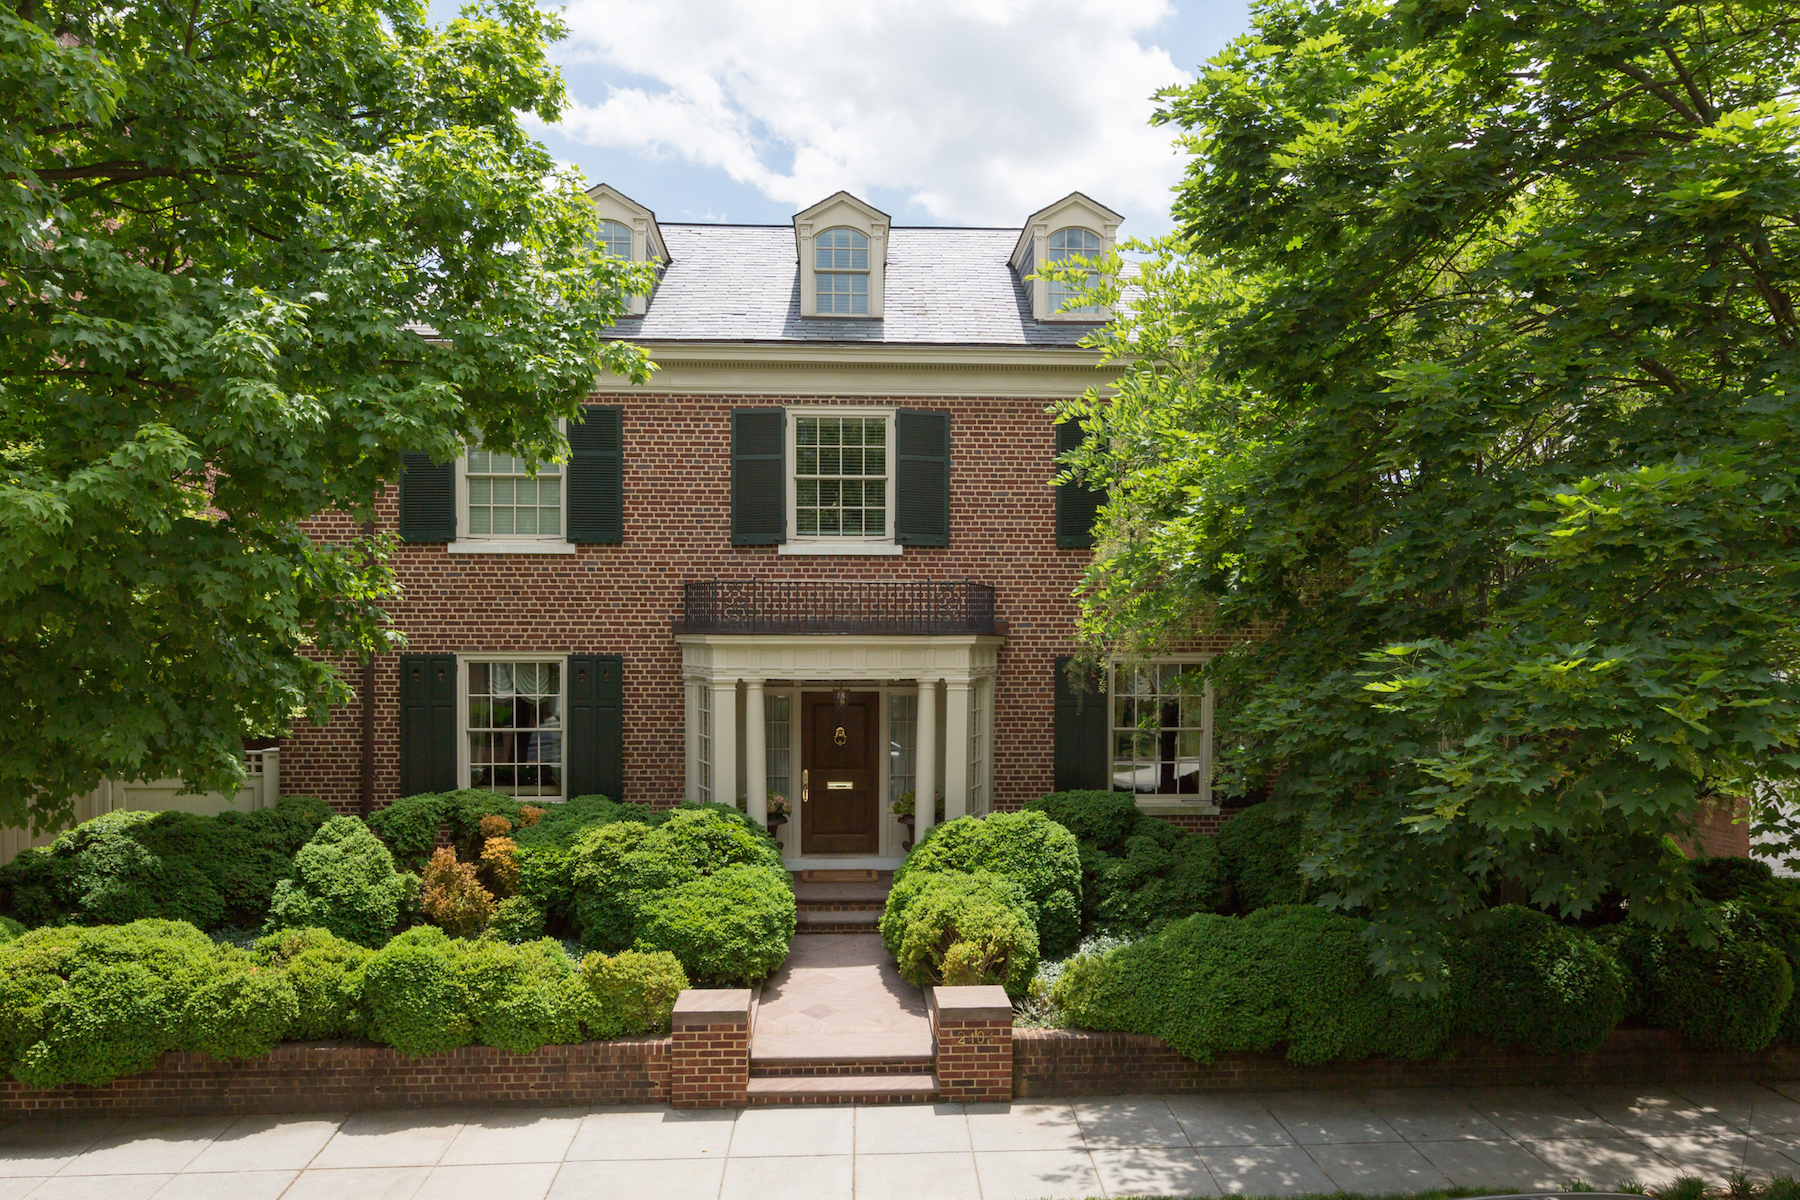 Single Family Home for Sale at Kalorama 2404 Wyoming Avenue NW Washington, District Of Columbia 20008 United States